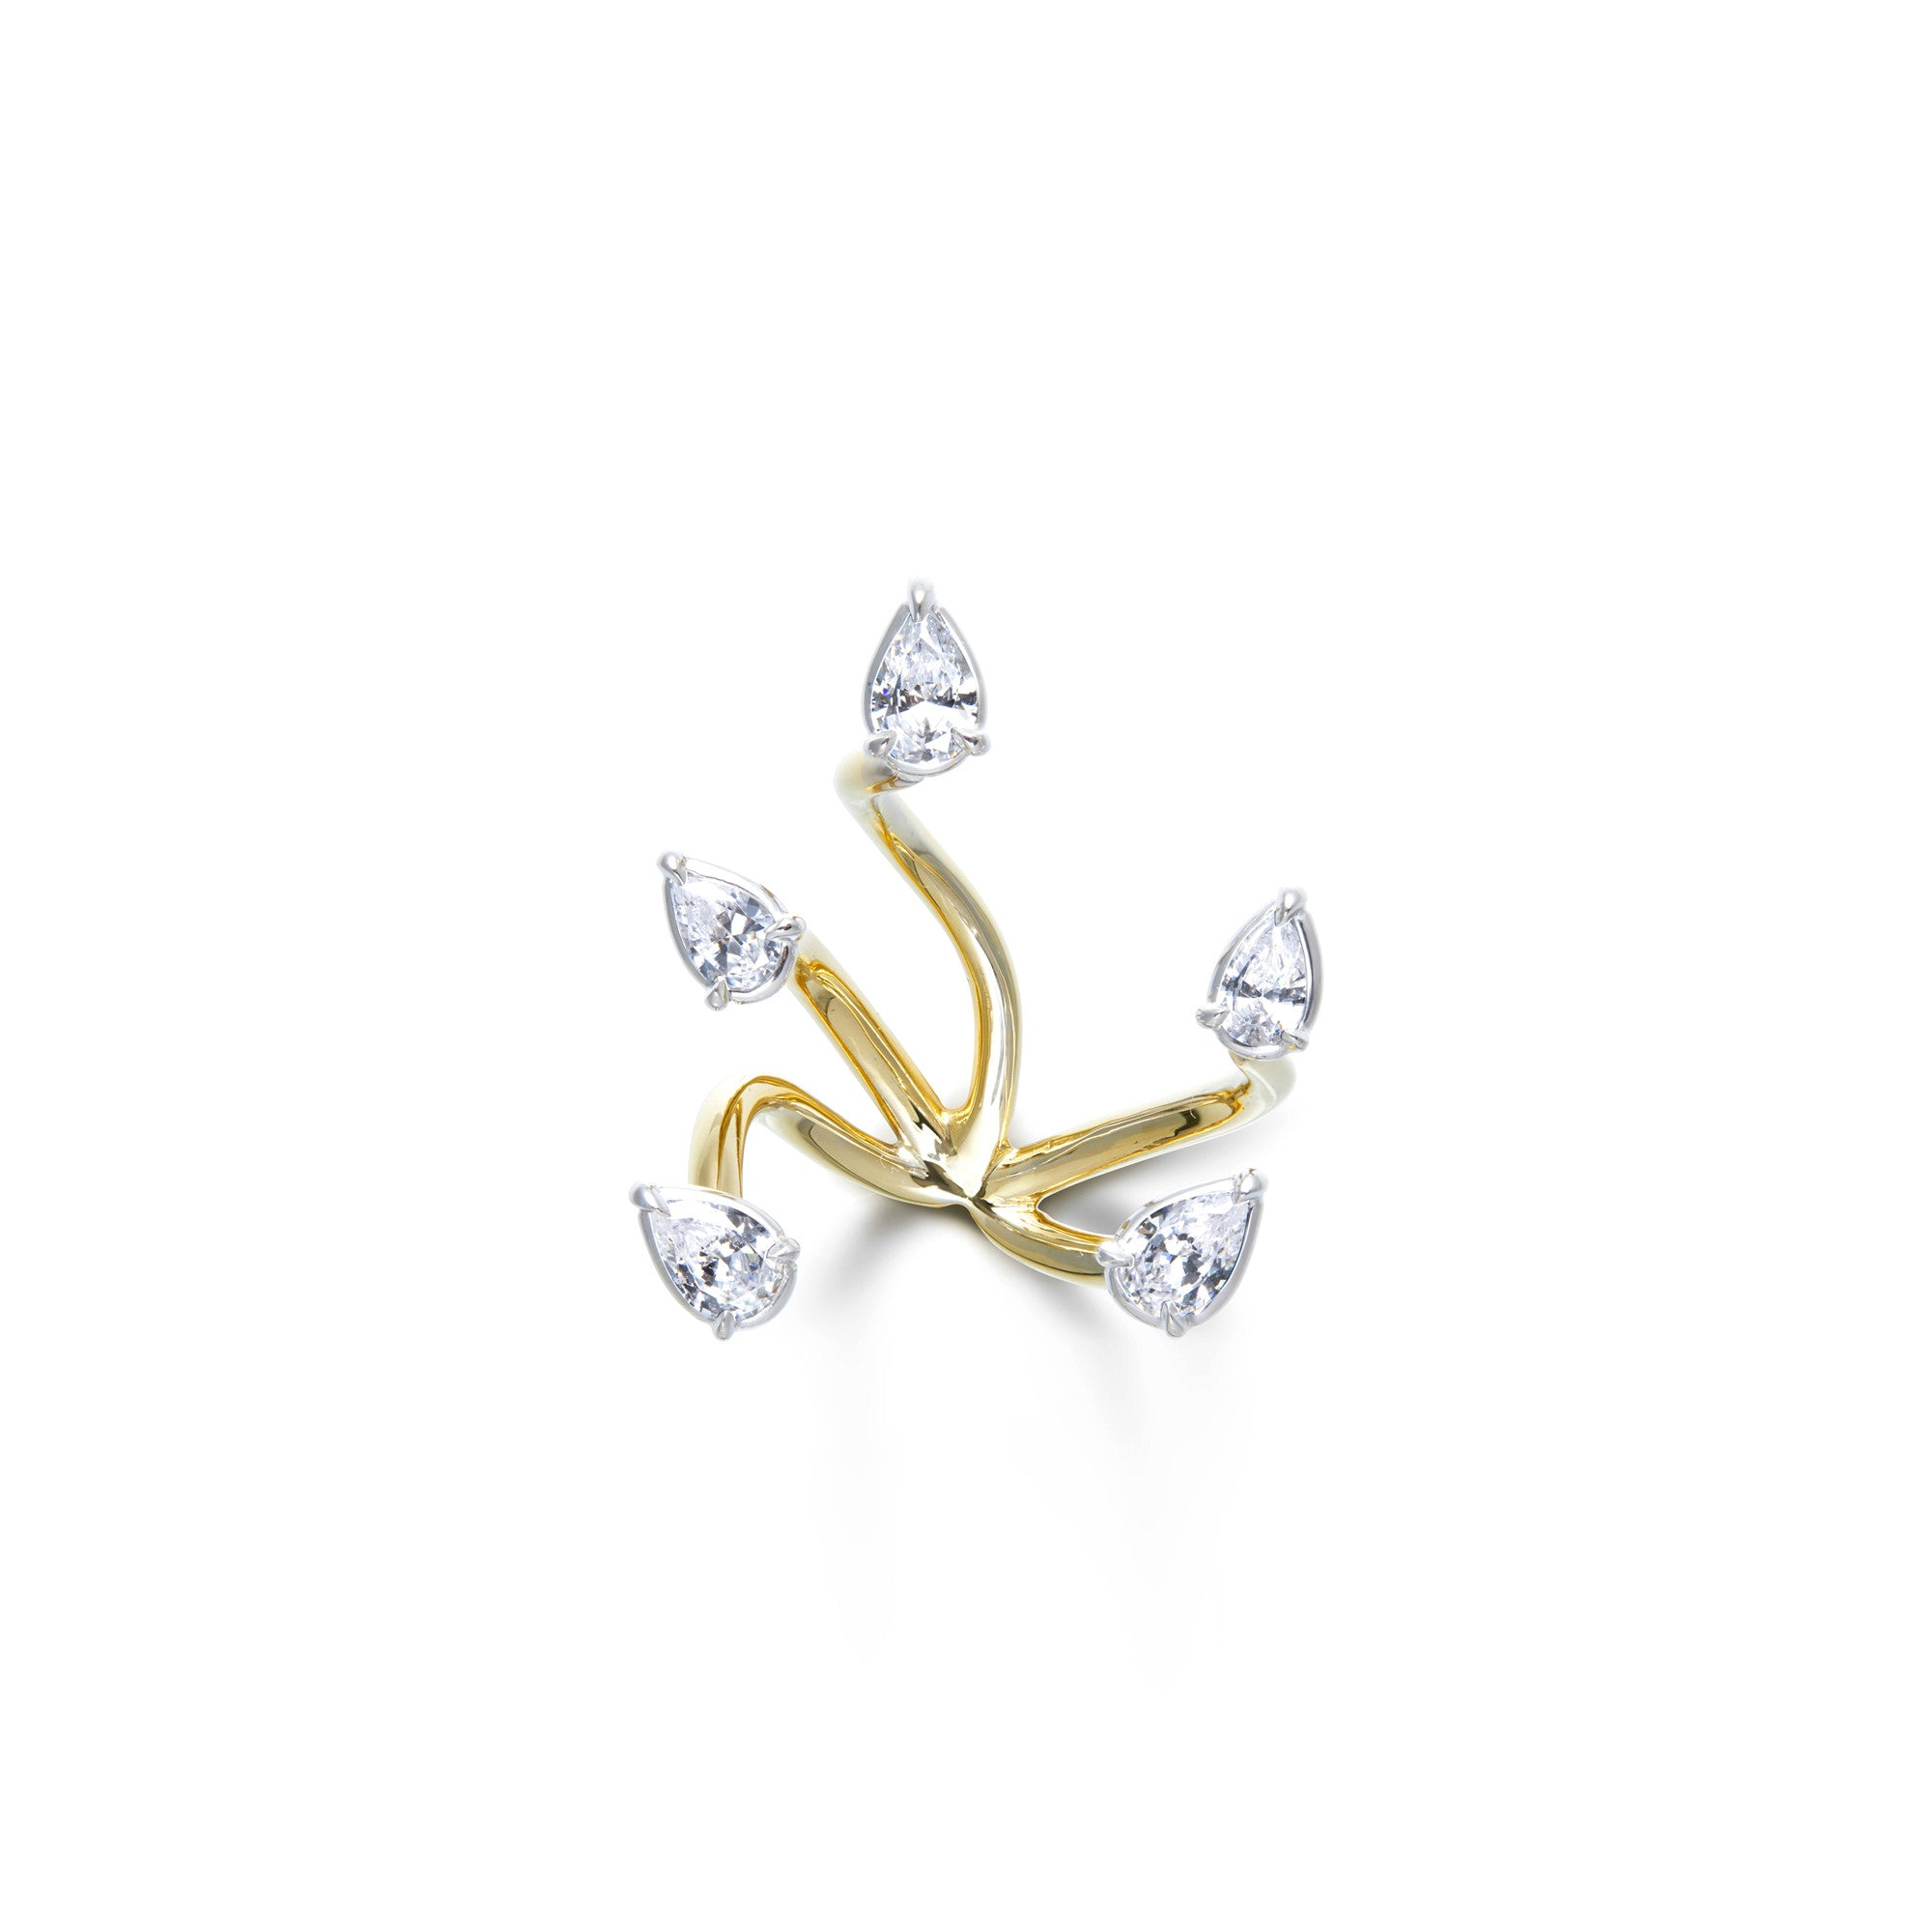 Pear-shaped white diamonds floating cuffs